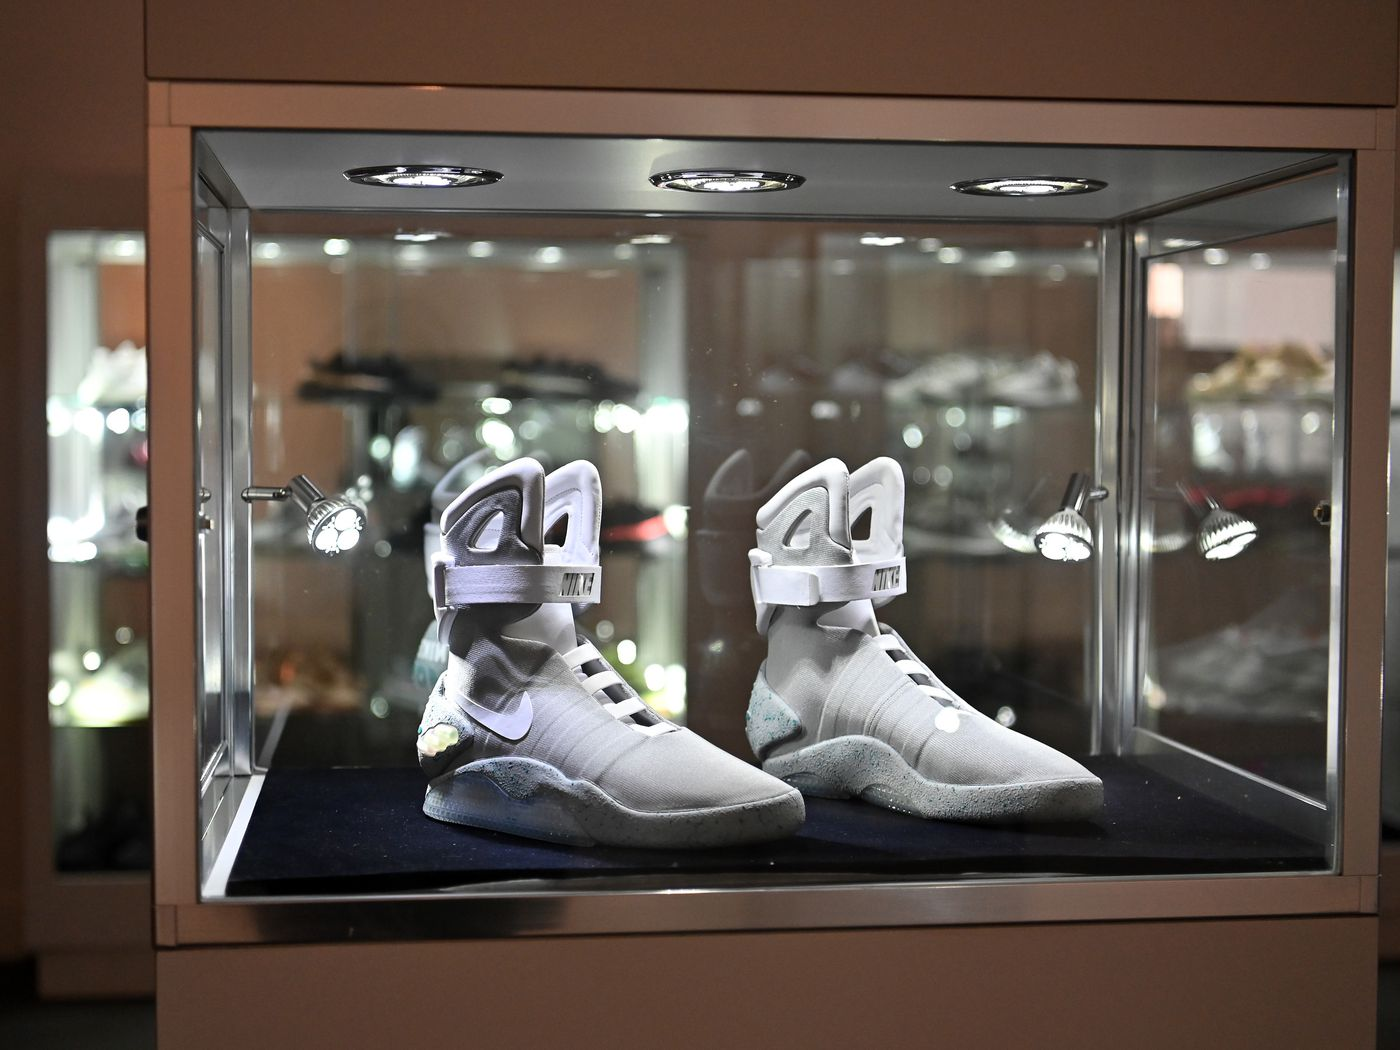 Sotheby's to auction off rare Nike sneakers, starting bids